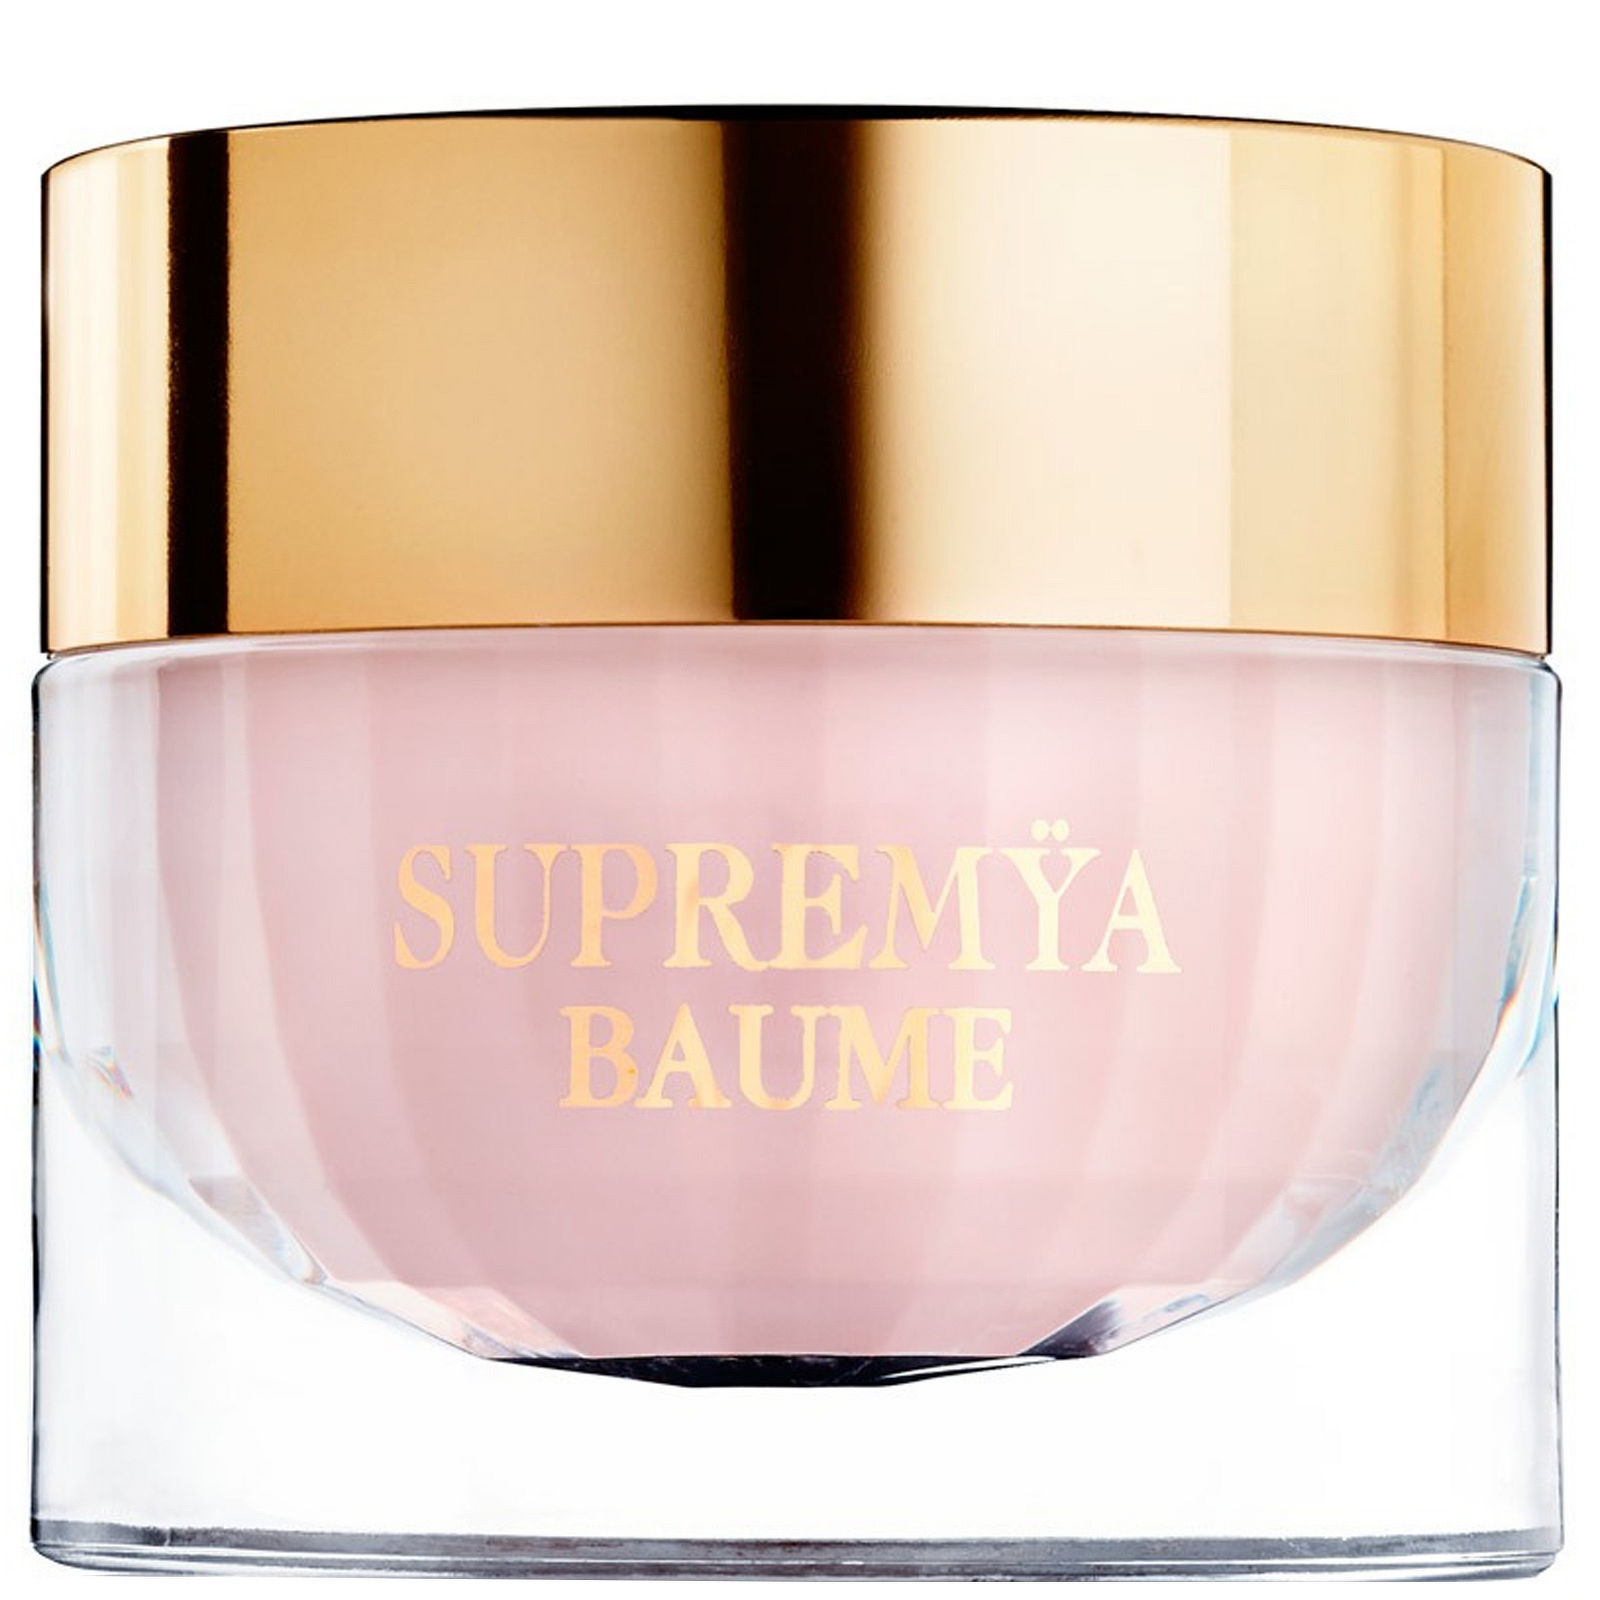 Sisley Supremÿa Baume Night Cream 50ml